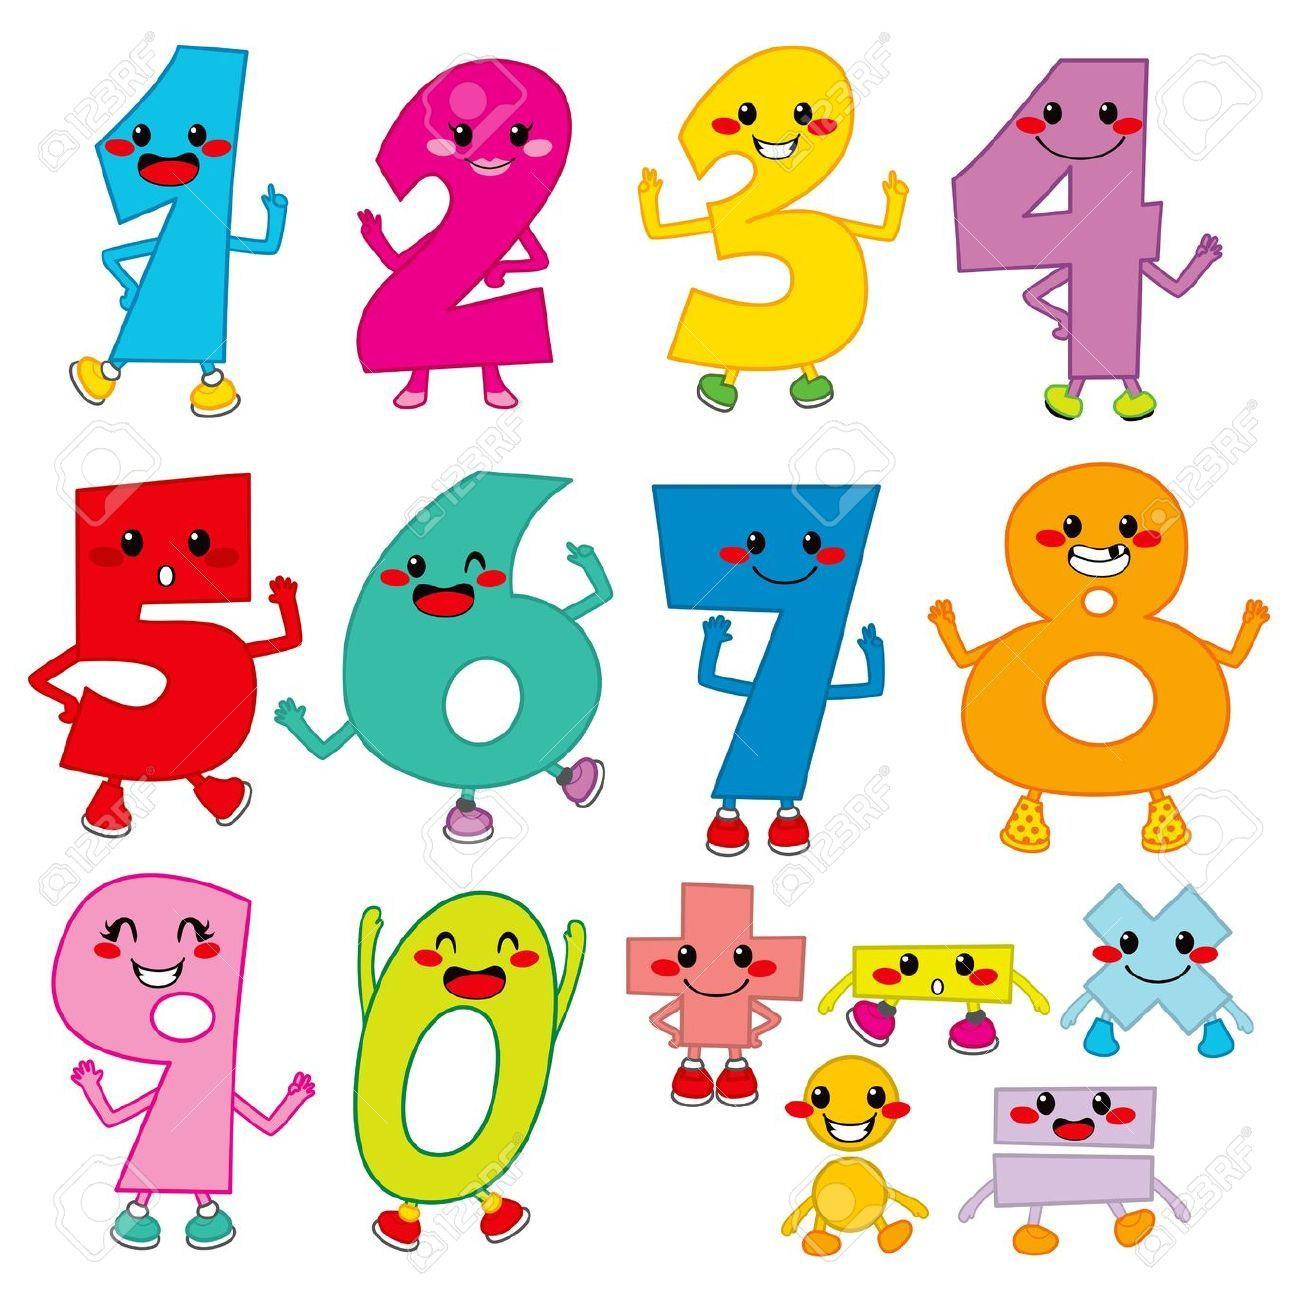 Numeros infantiles animados | Scrapbook fonts, Art activities for kids, Kid  fonts